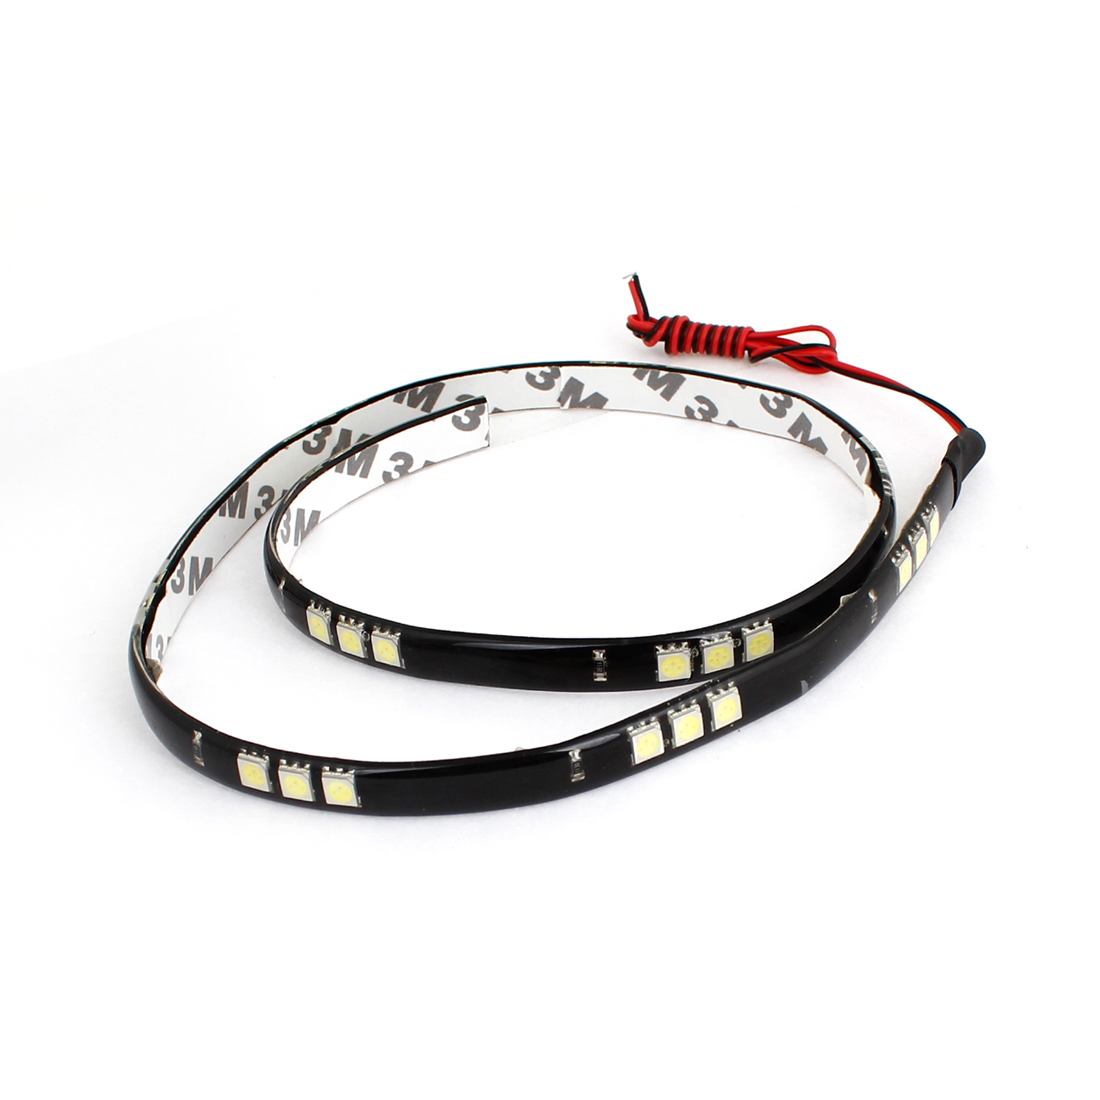 "White 30-LED 5050 SMD Flexible Lamp Light Strip Sticker 23.6"" Long"